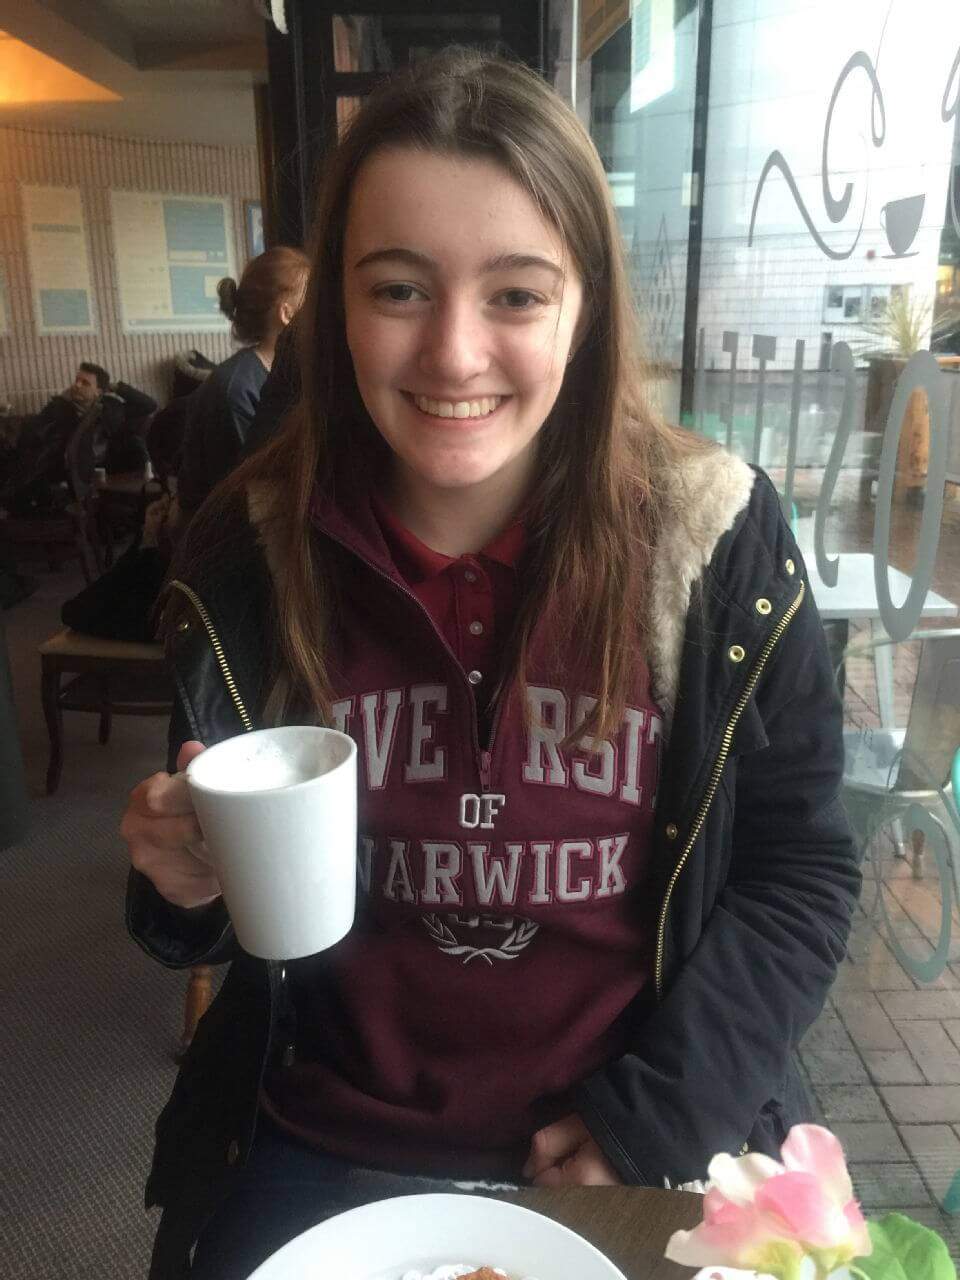 Me enjoying my first ever white hot chocolate at curiositea